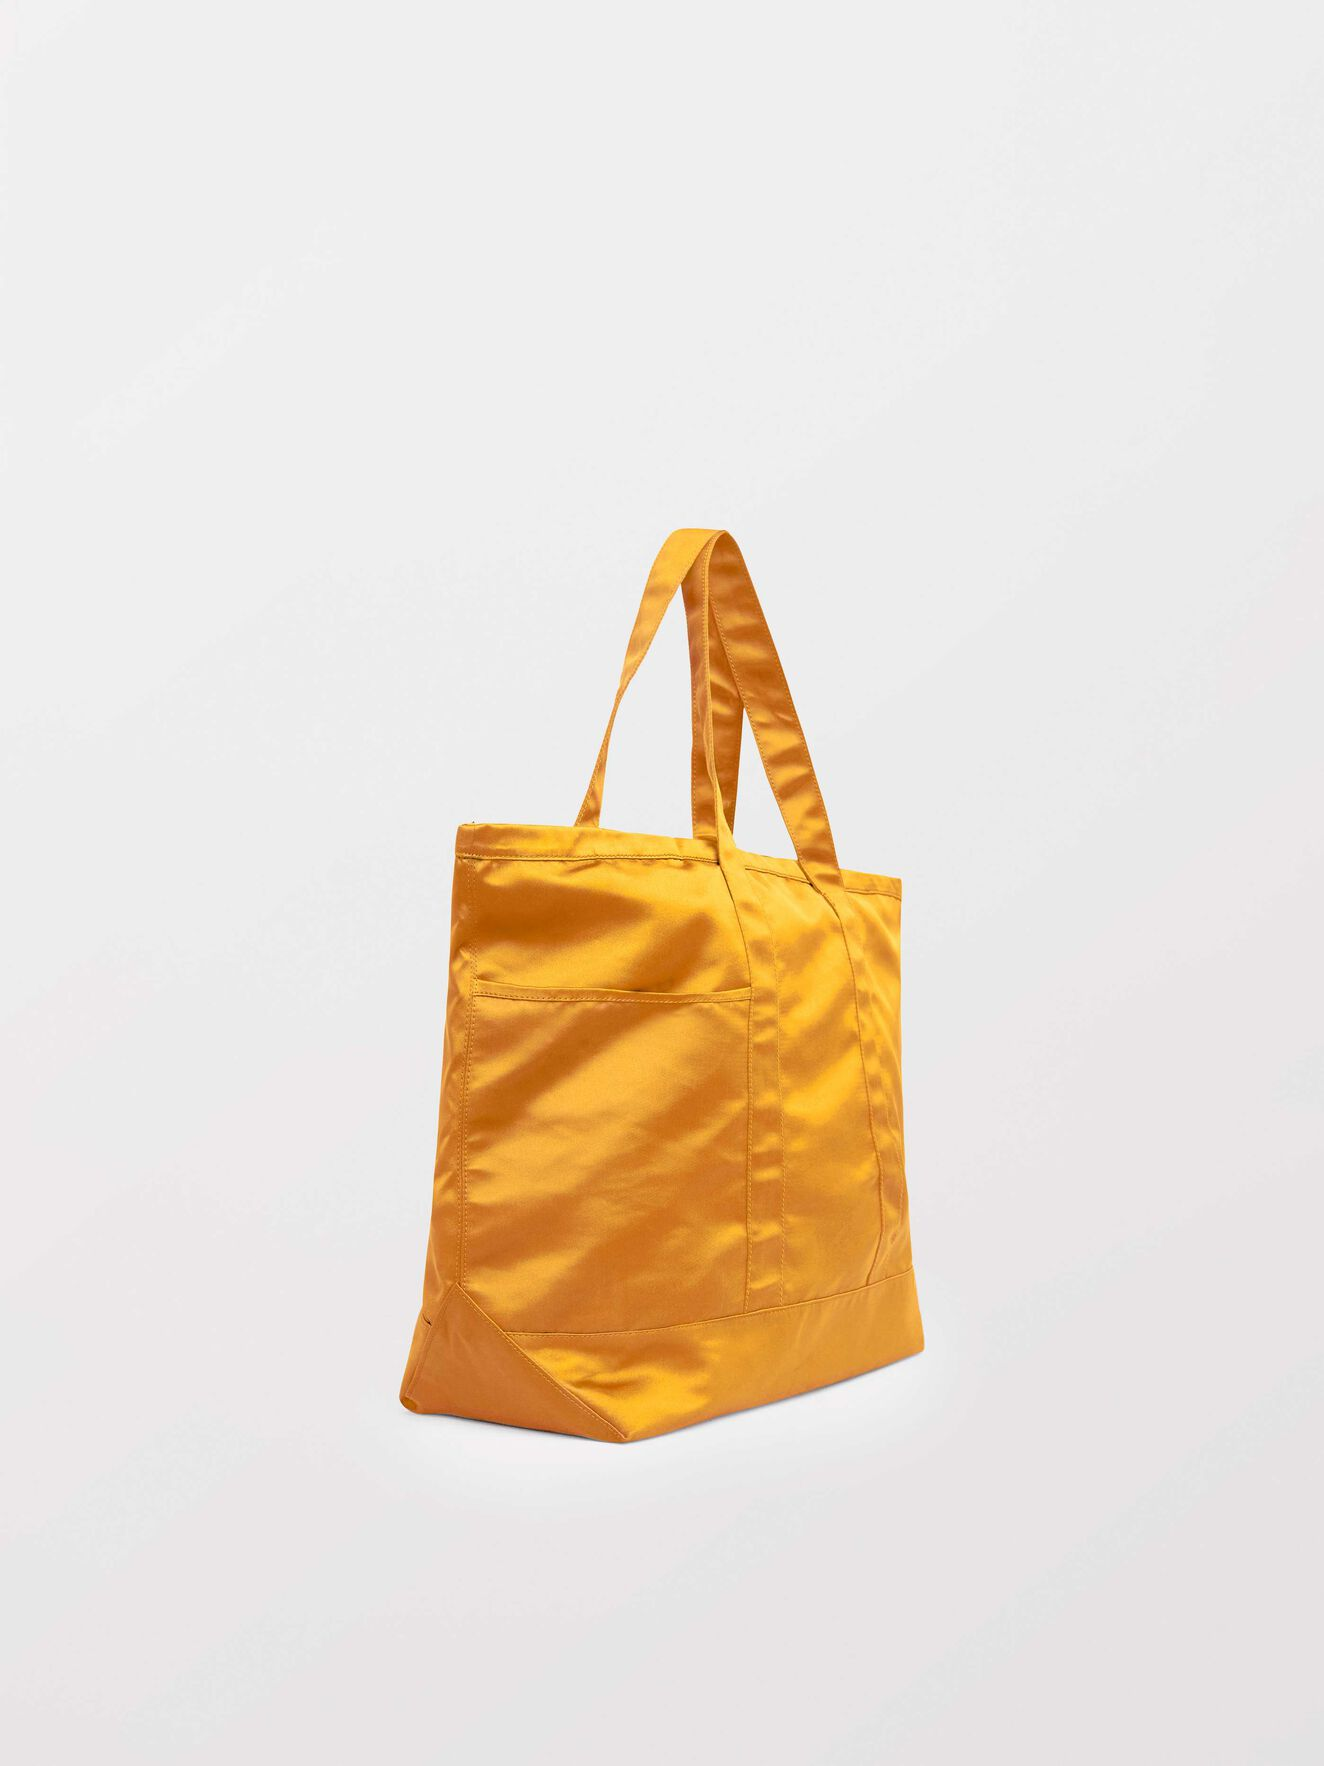 Drop S Tote  in Sunny Yolk from Tiger of Sweden